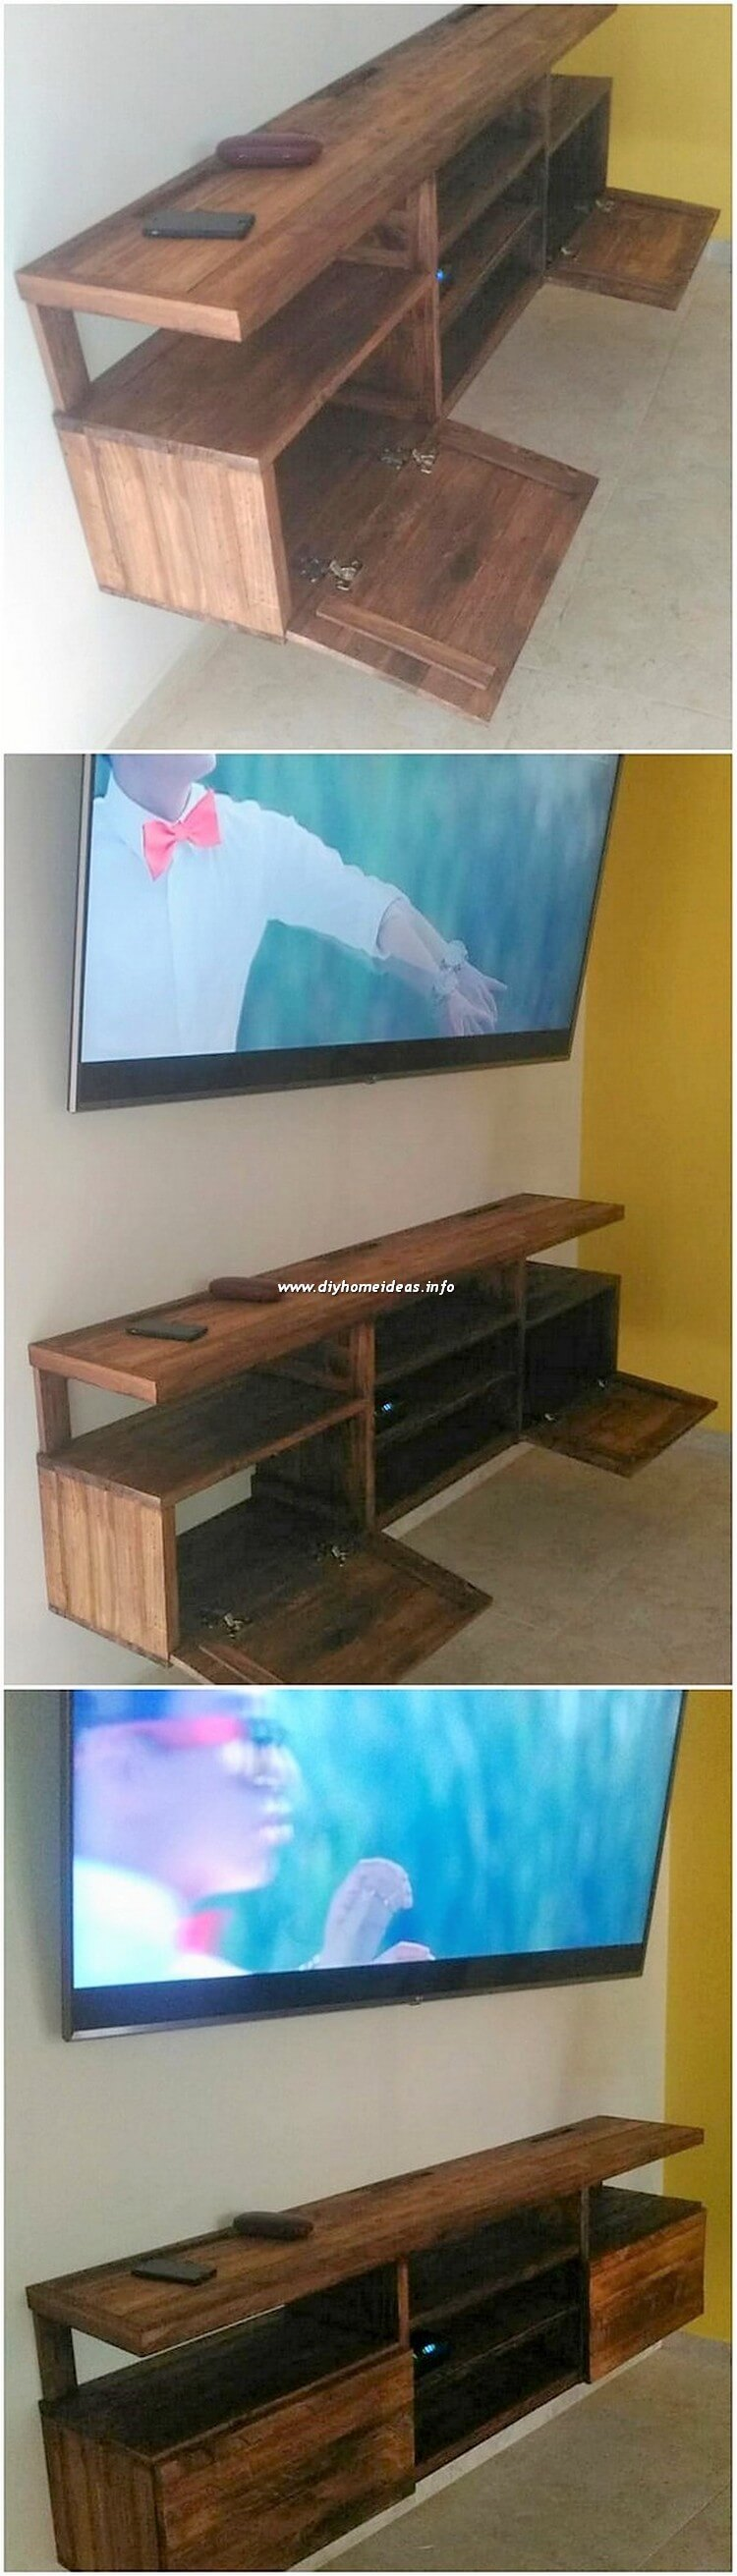 Pallet Wall Cabinet